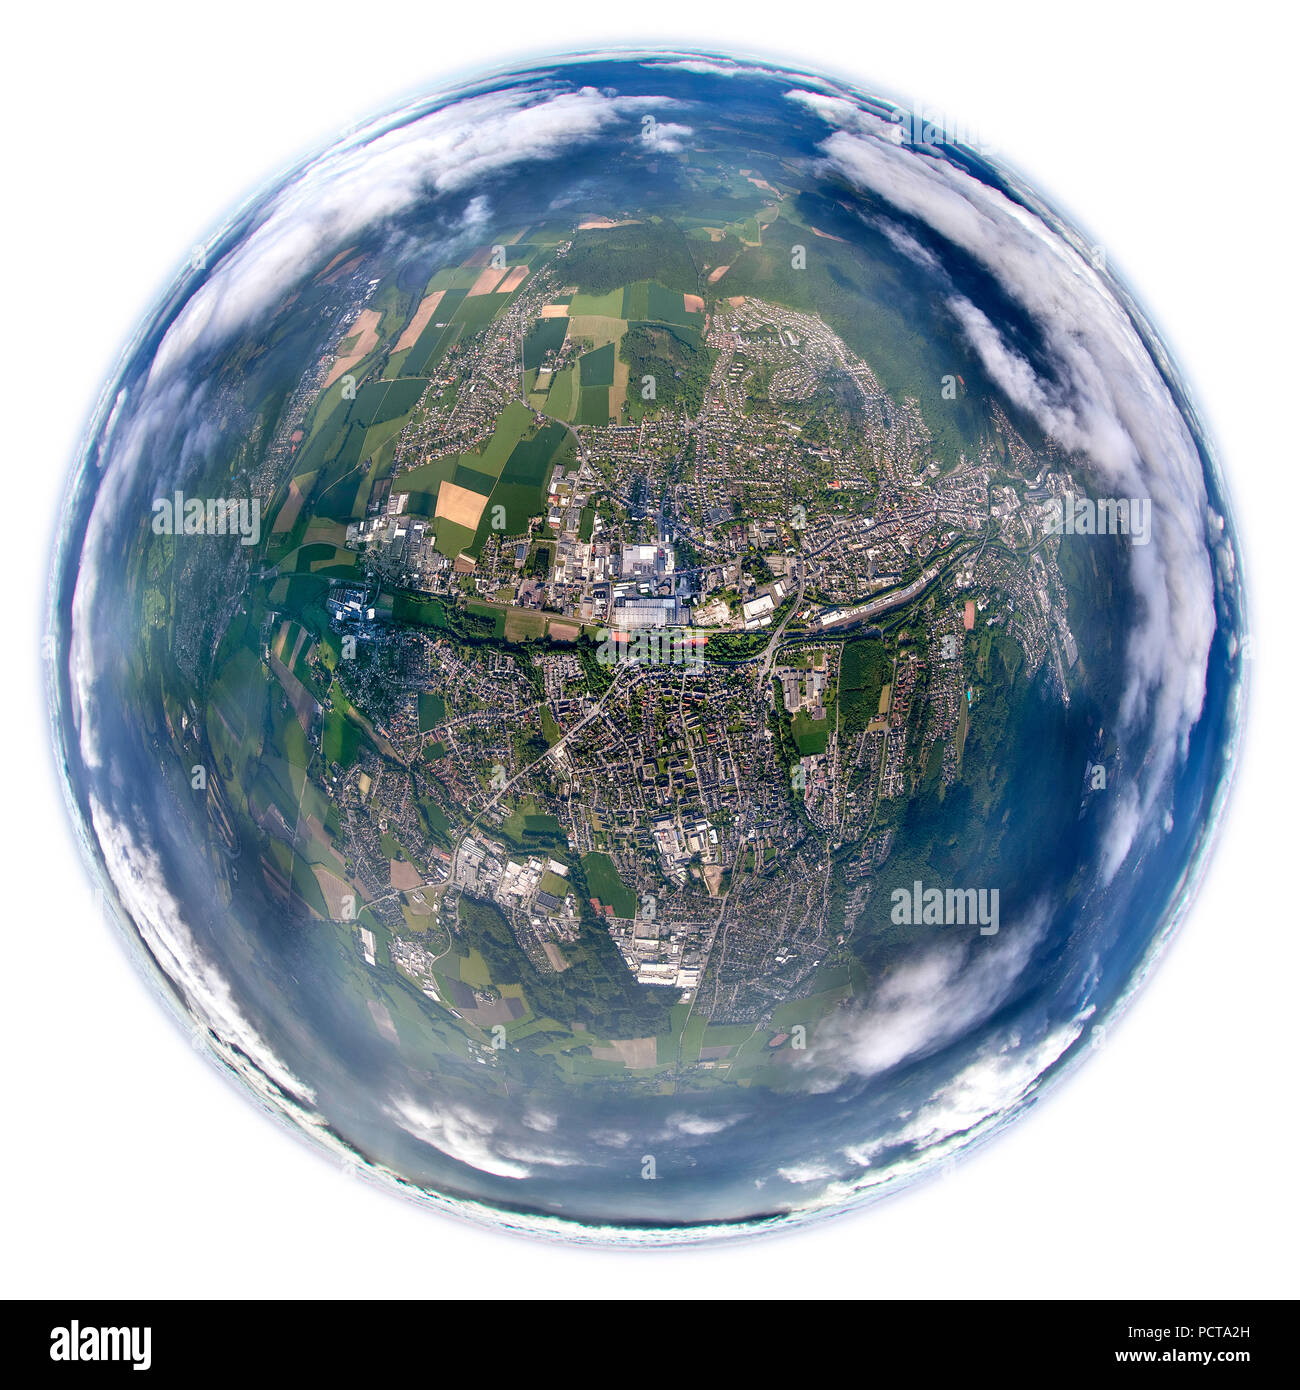 Fisheye lens, view of Menden, view through the cloud cover from an altitude of 5000 feet, Menden, Sauerland, North Rhine-Westphalia, Germany Stock Photo